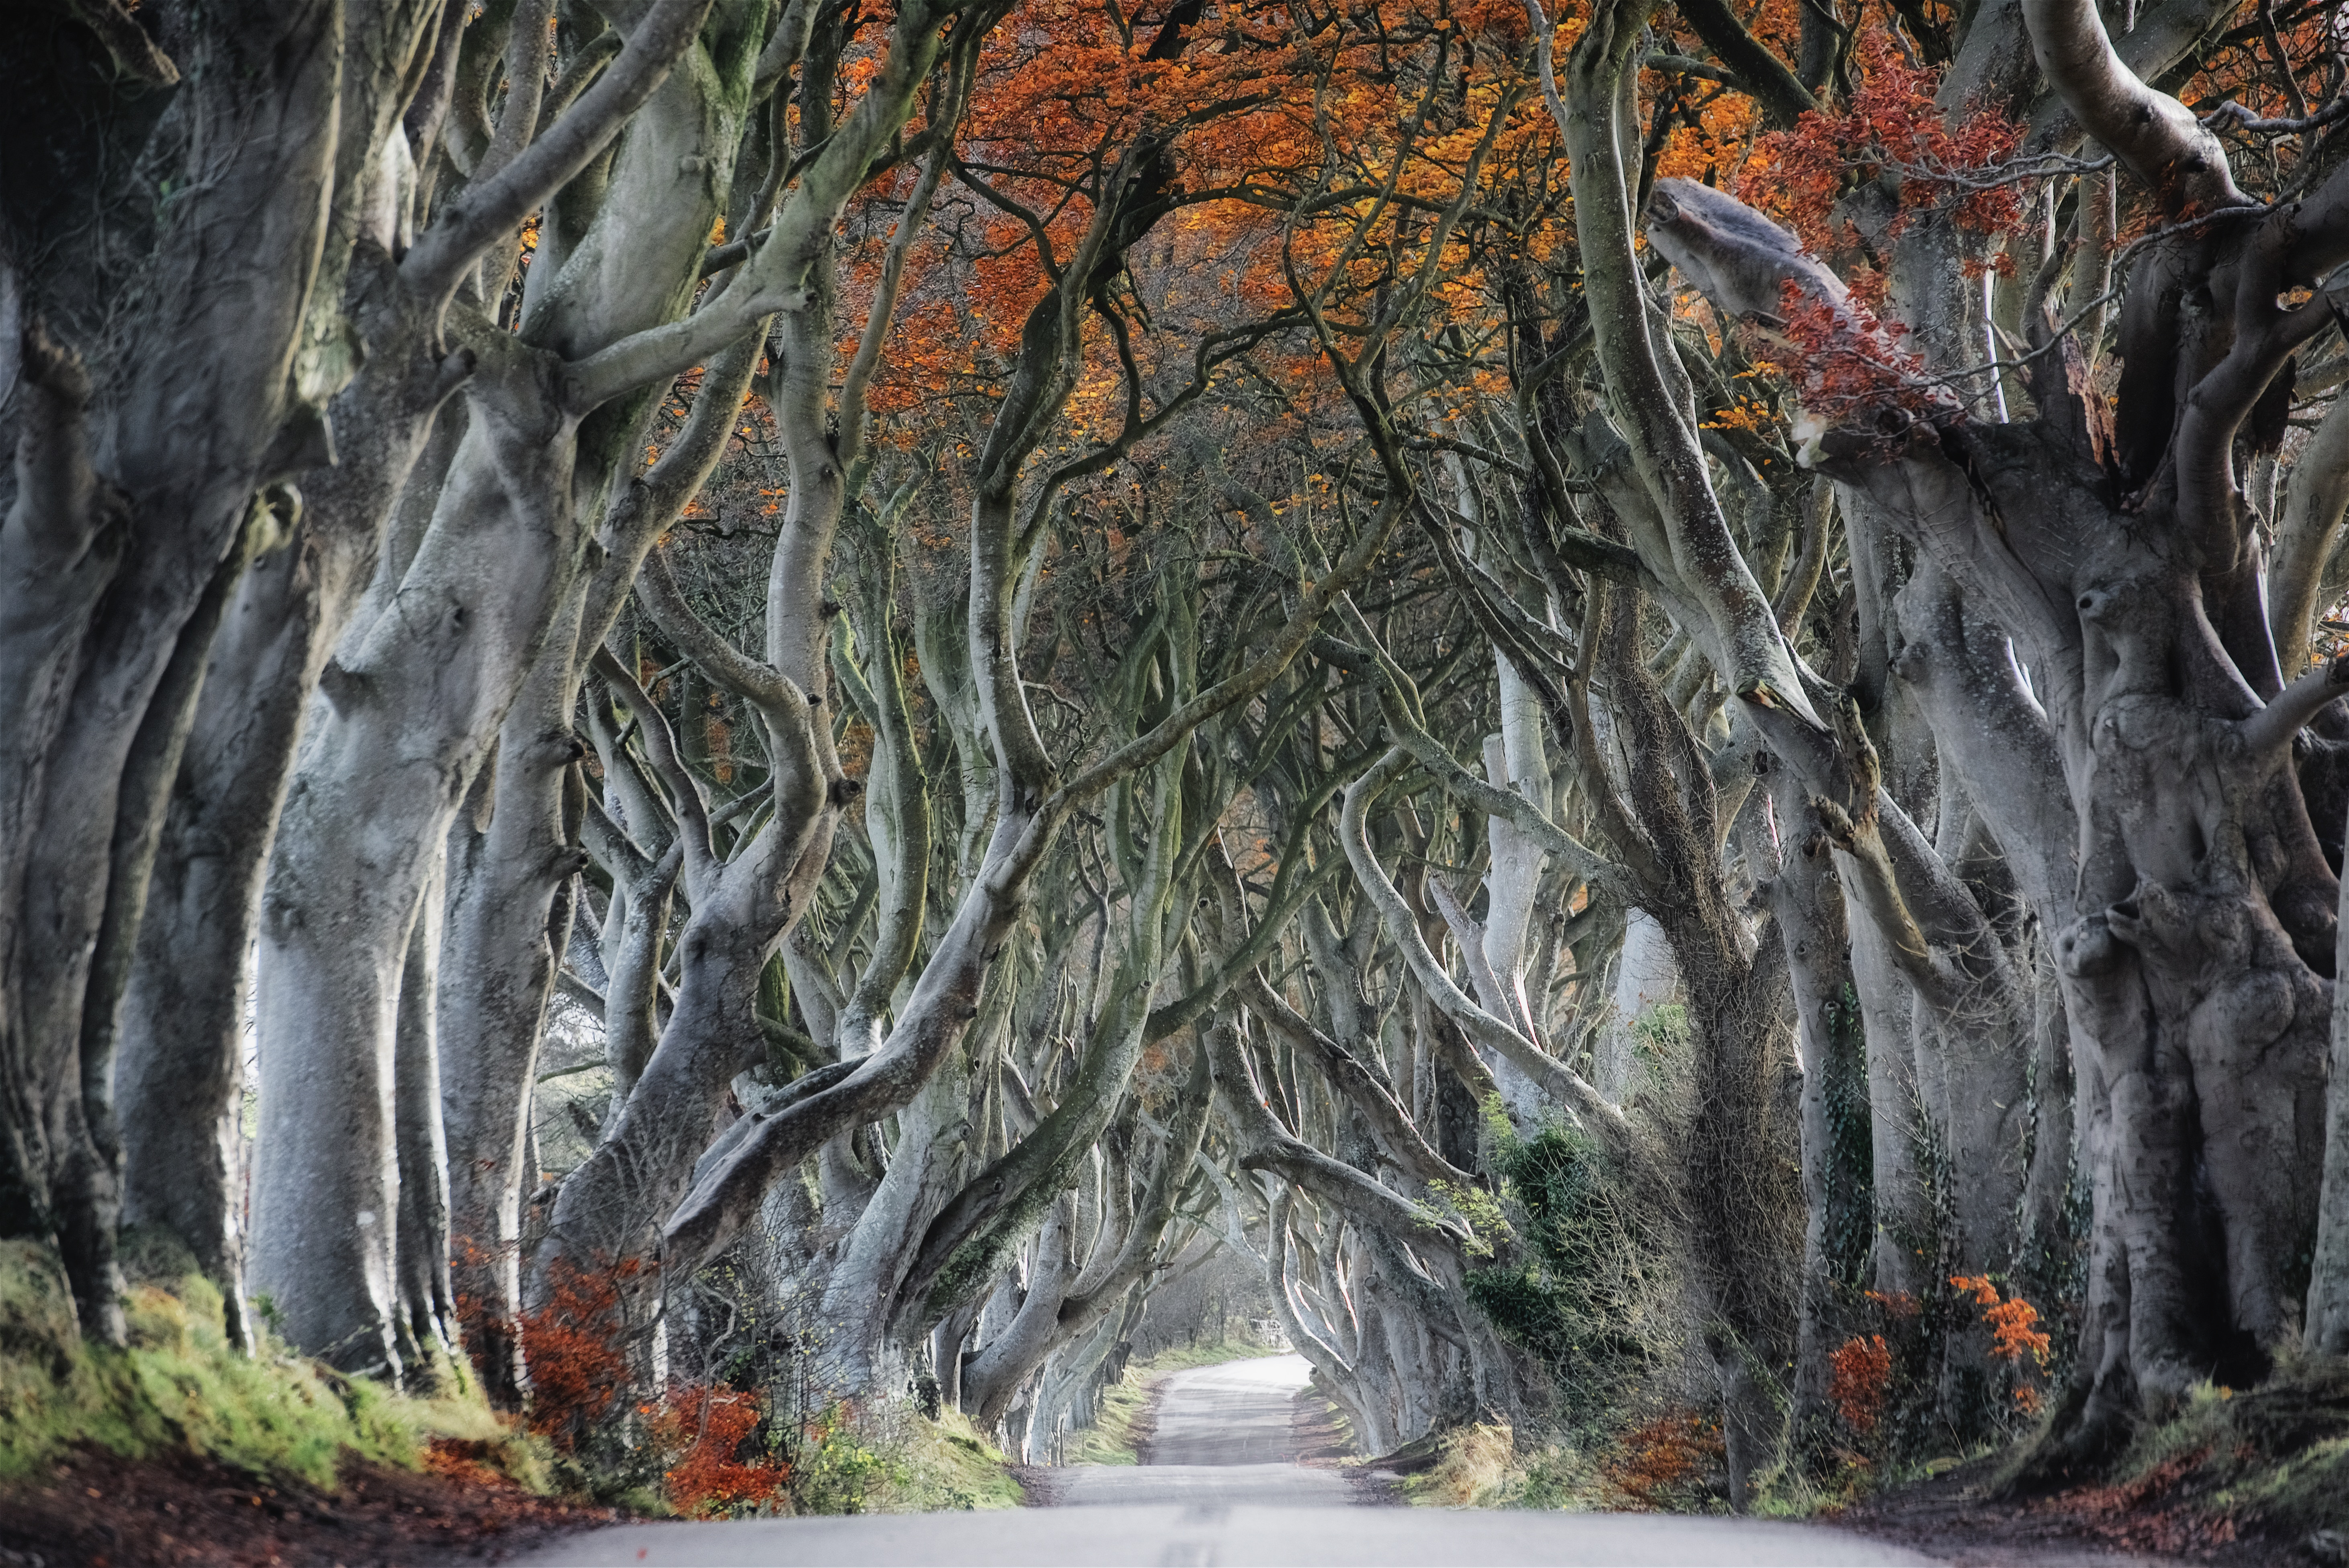 The Dark Hedges of Northern Ireland's County Antrim